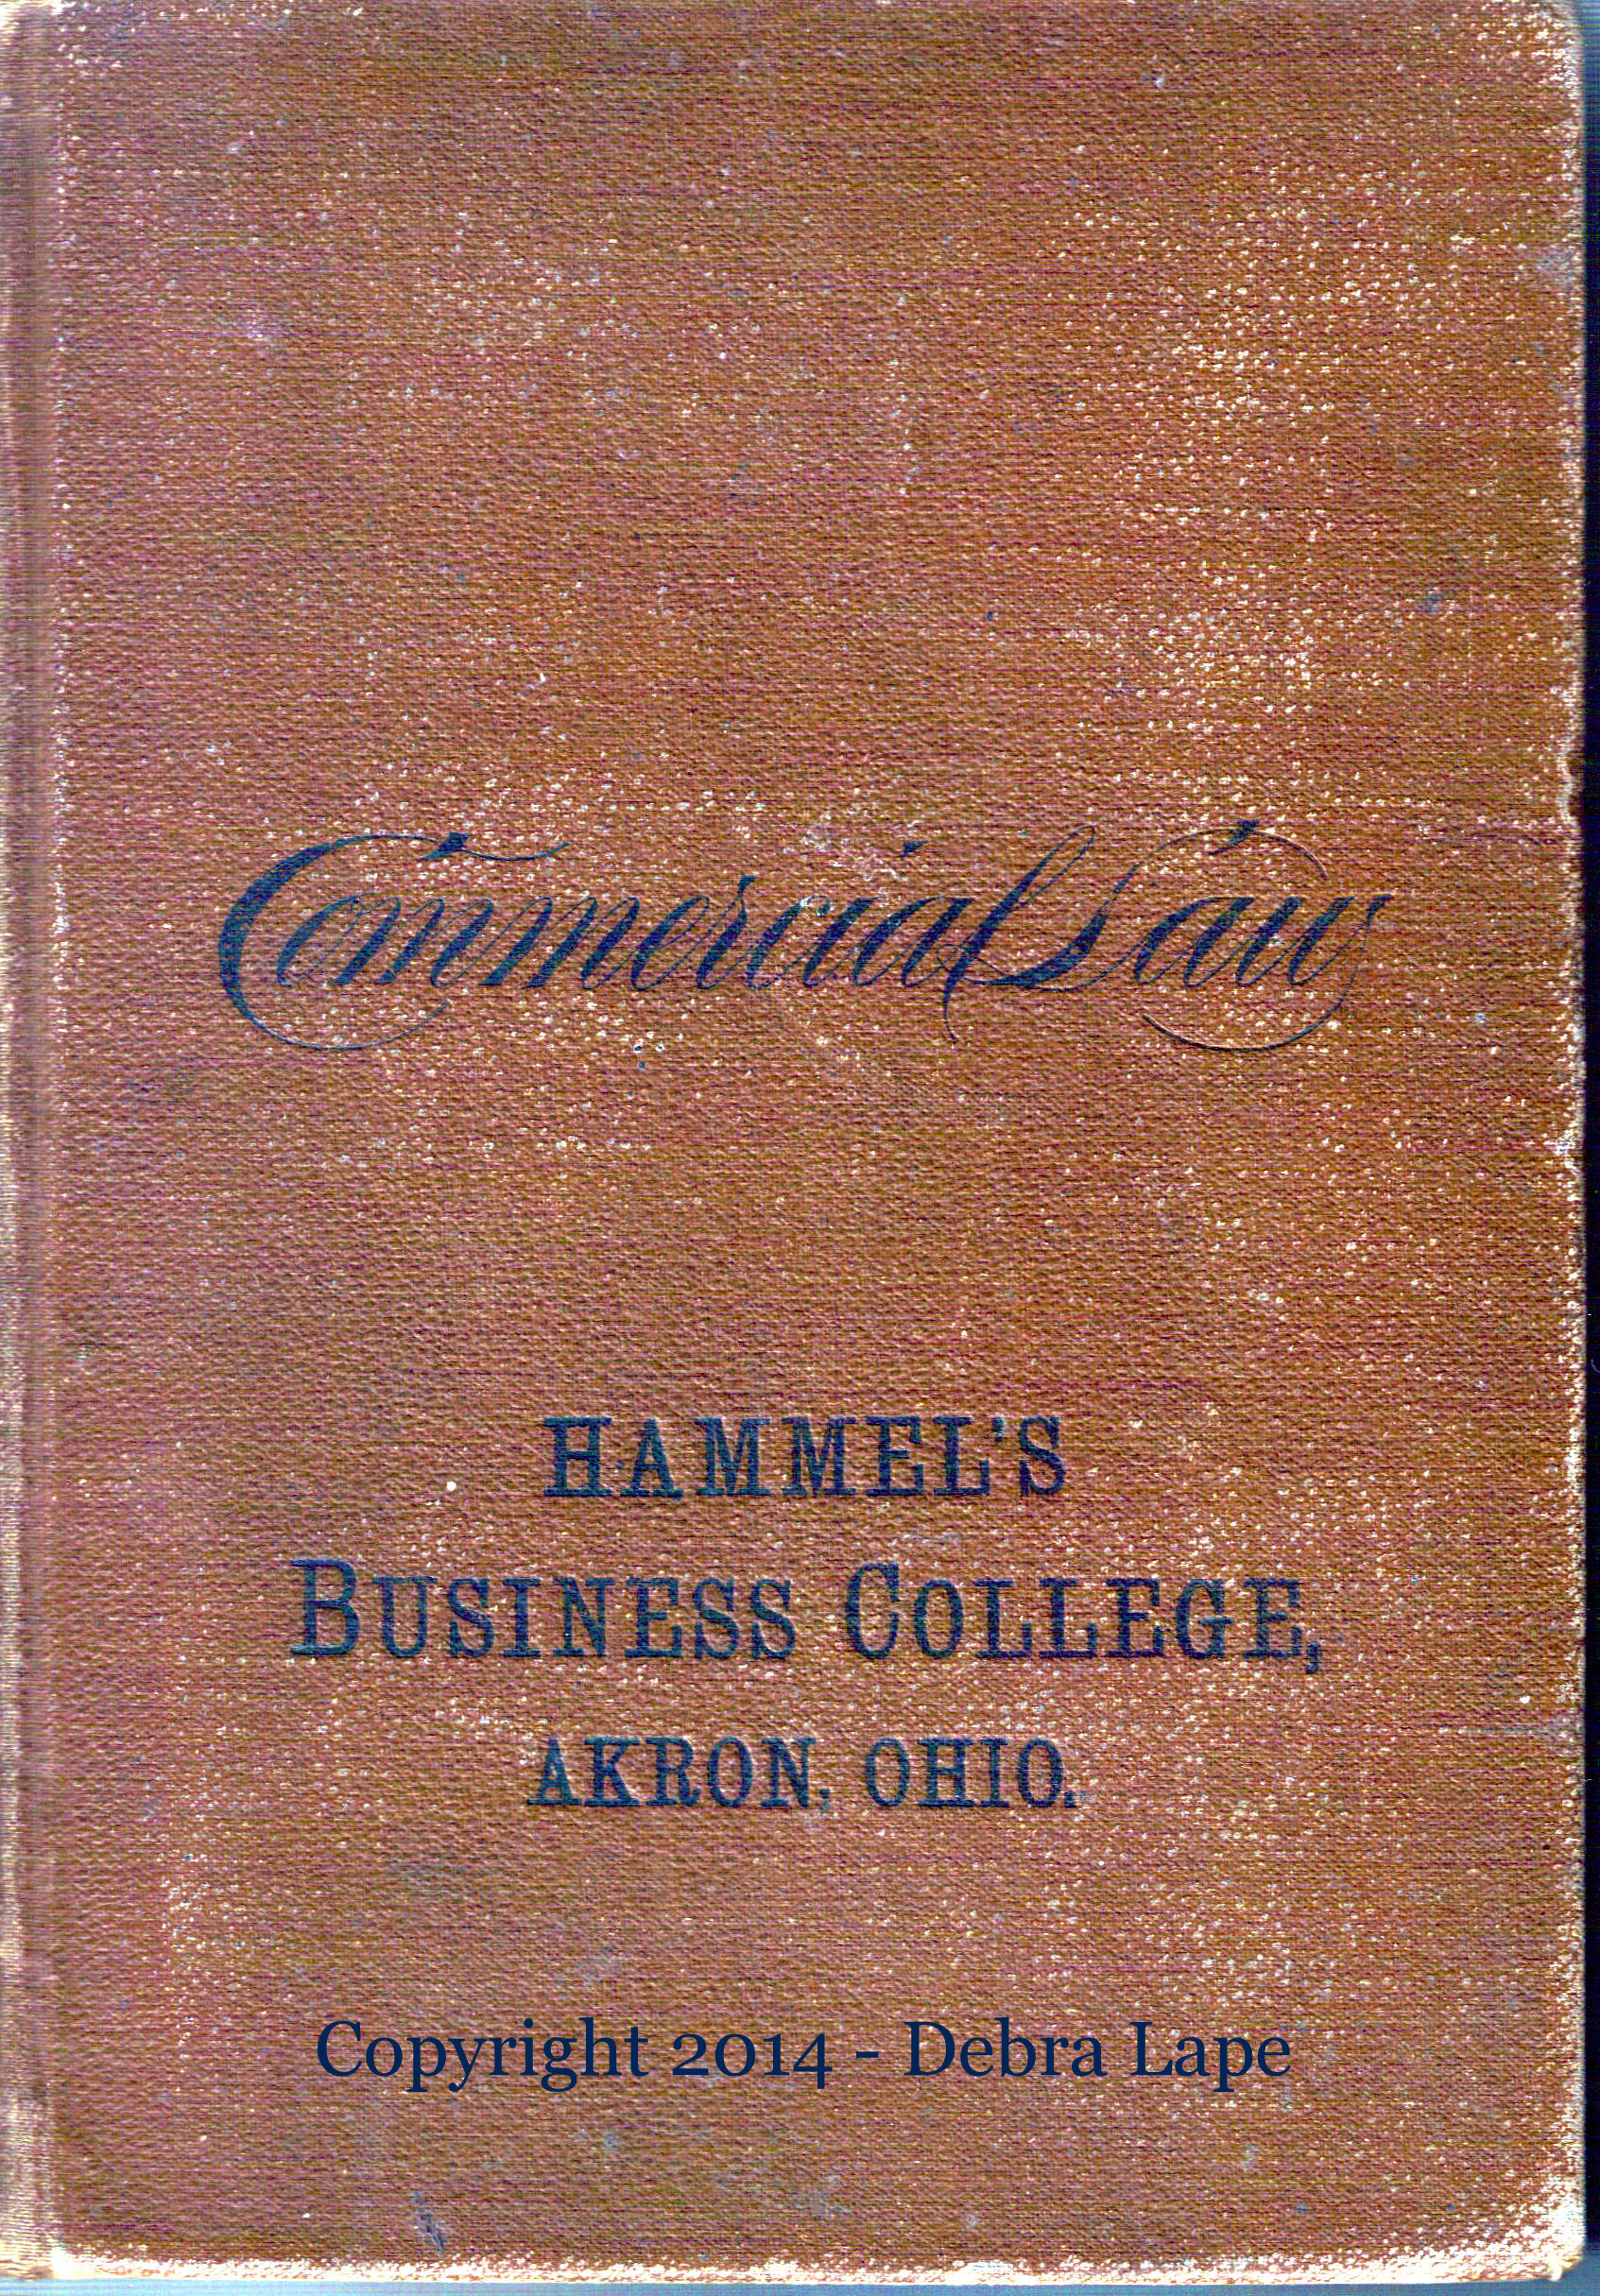 Lizzie\u0027s son Arville Lape\u0027s Commercial Law textbook while he attended Hammel\u0027s Business College in Akron on